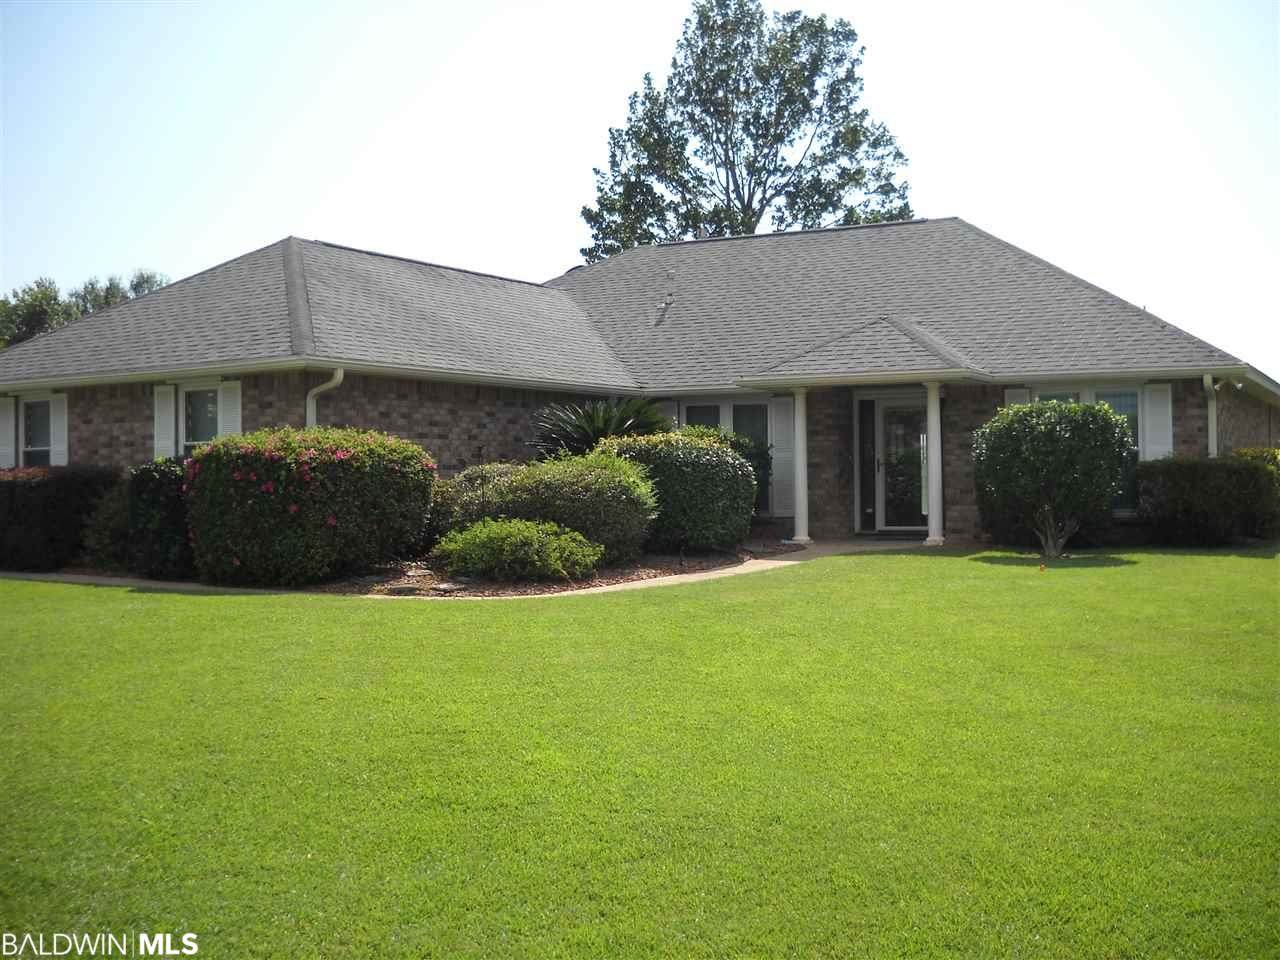 9205 Fairway Drive - Photo 1